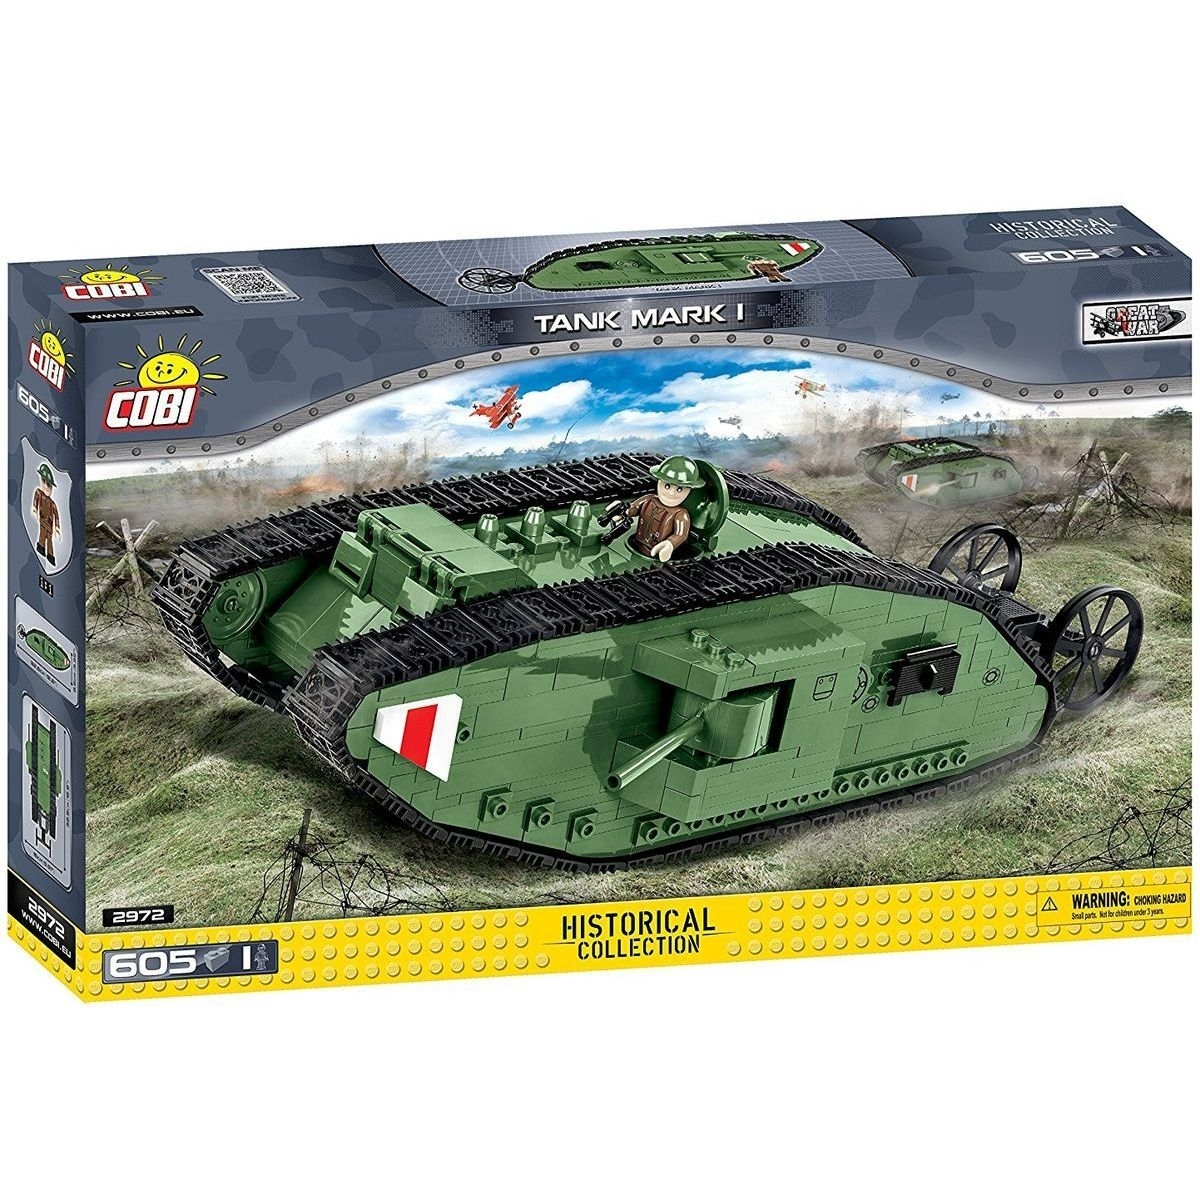 Cobi 2972 Tank Mark I stavebnice Great War